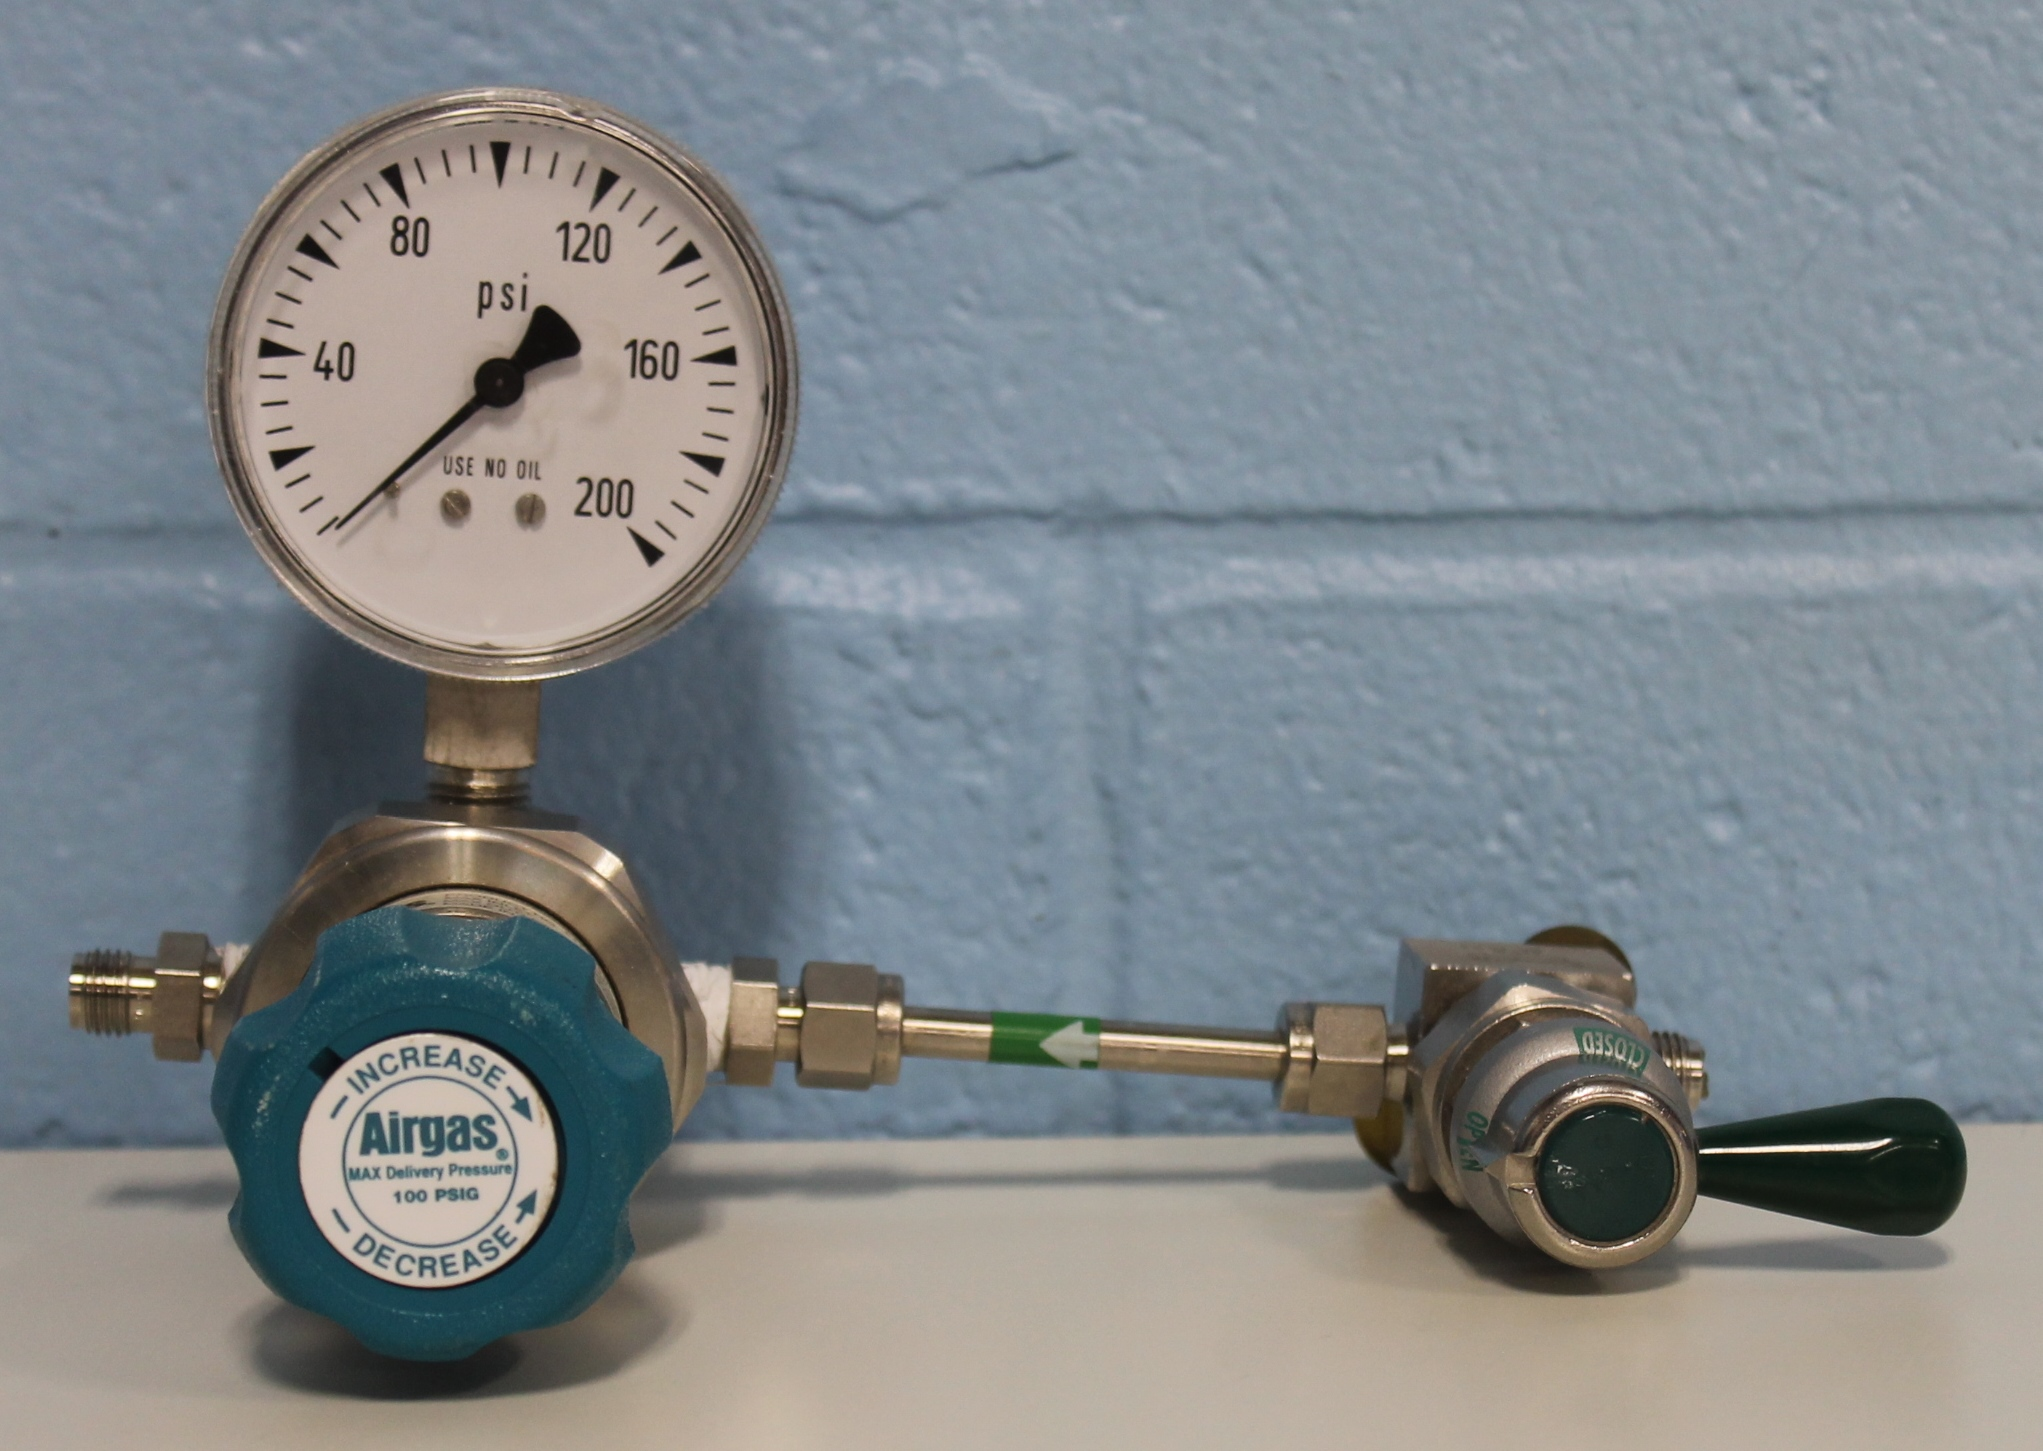 Airgas High-Purity Single-line Regulator with SS High-Purity High-Pressure Diaphragm-Sealed Valve, 1/4 Image